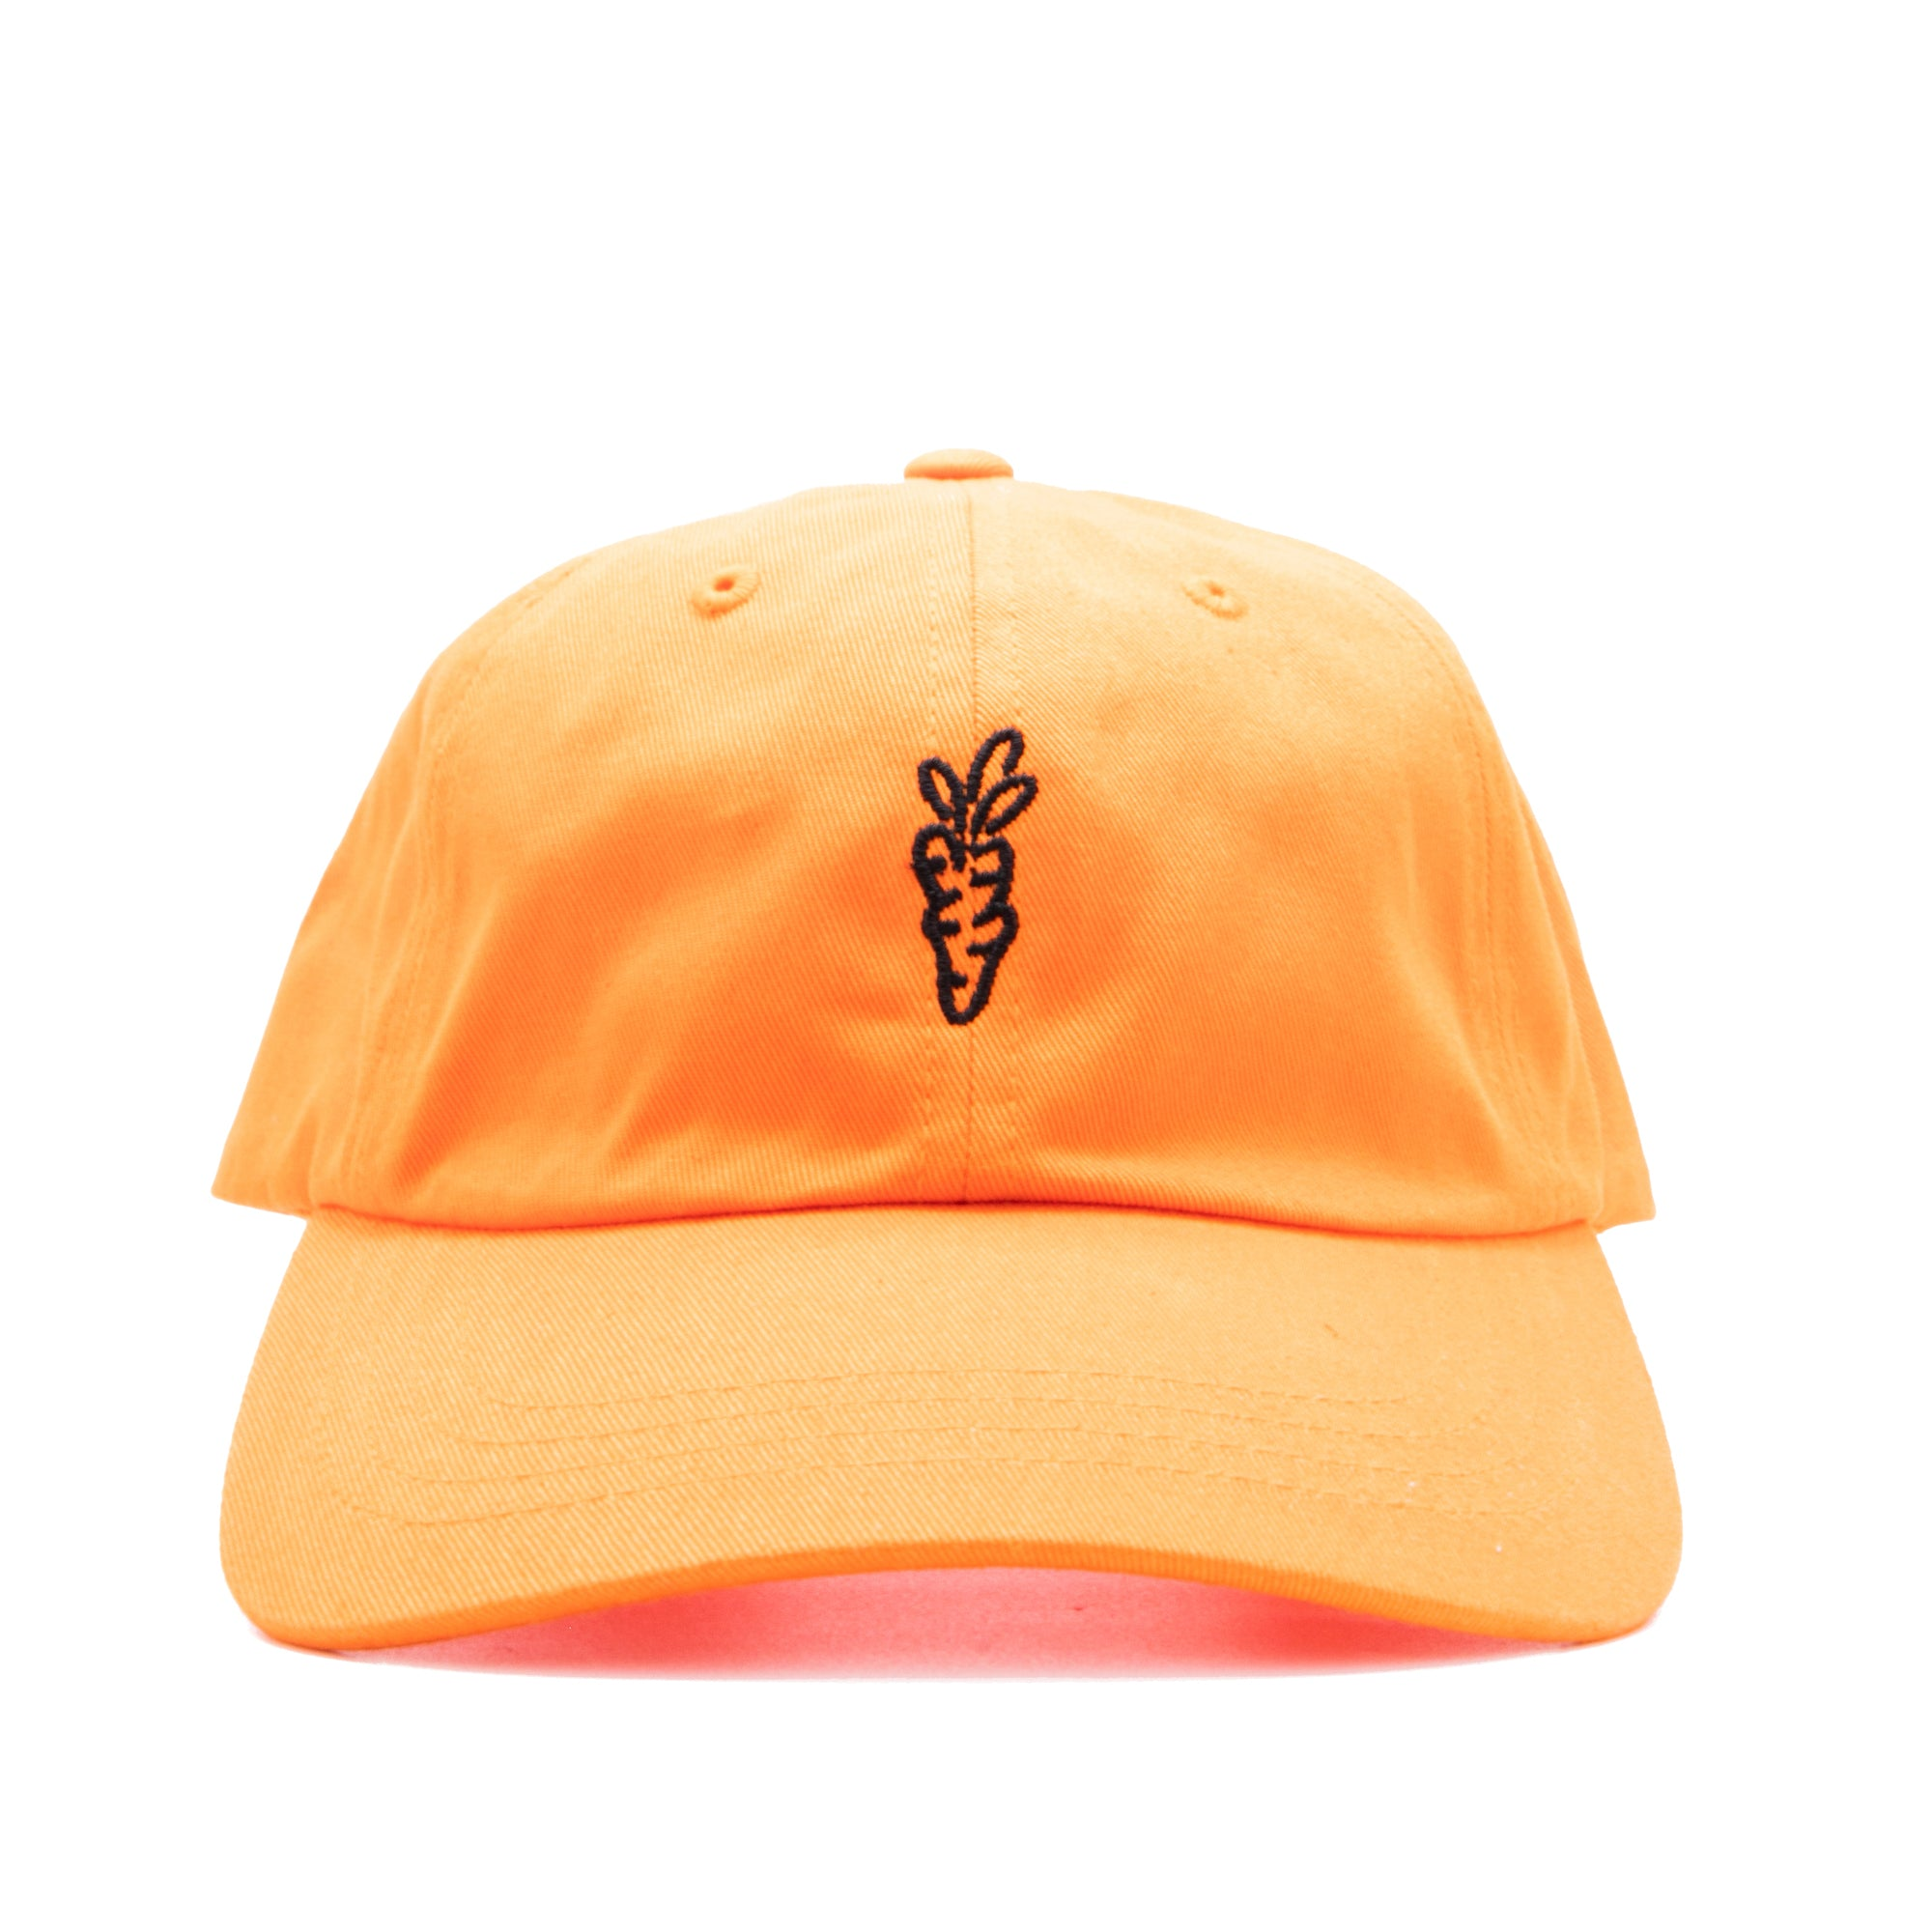 SIGNATURE BALL CAP ORANGE